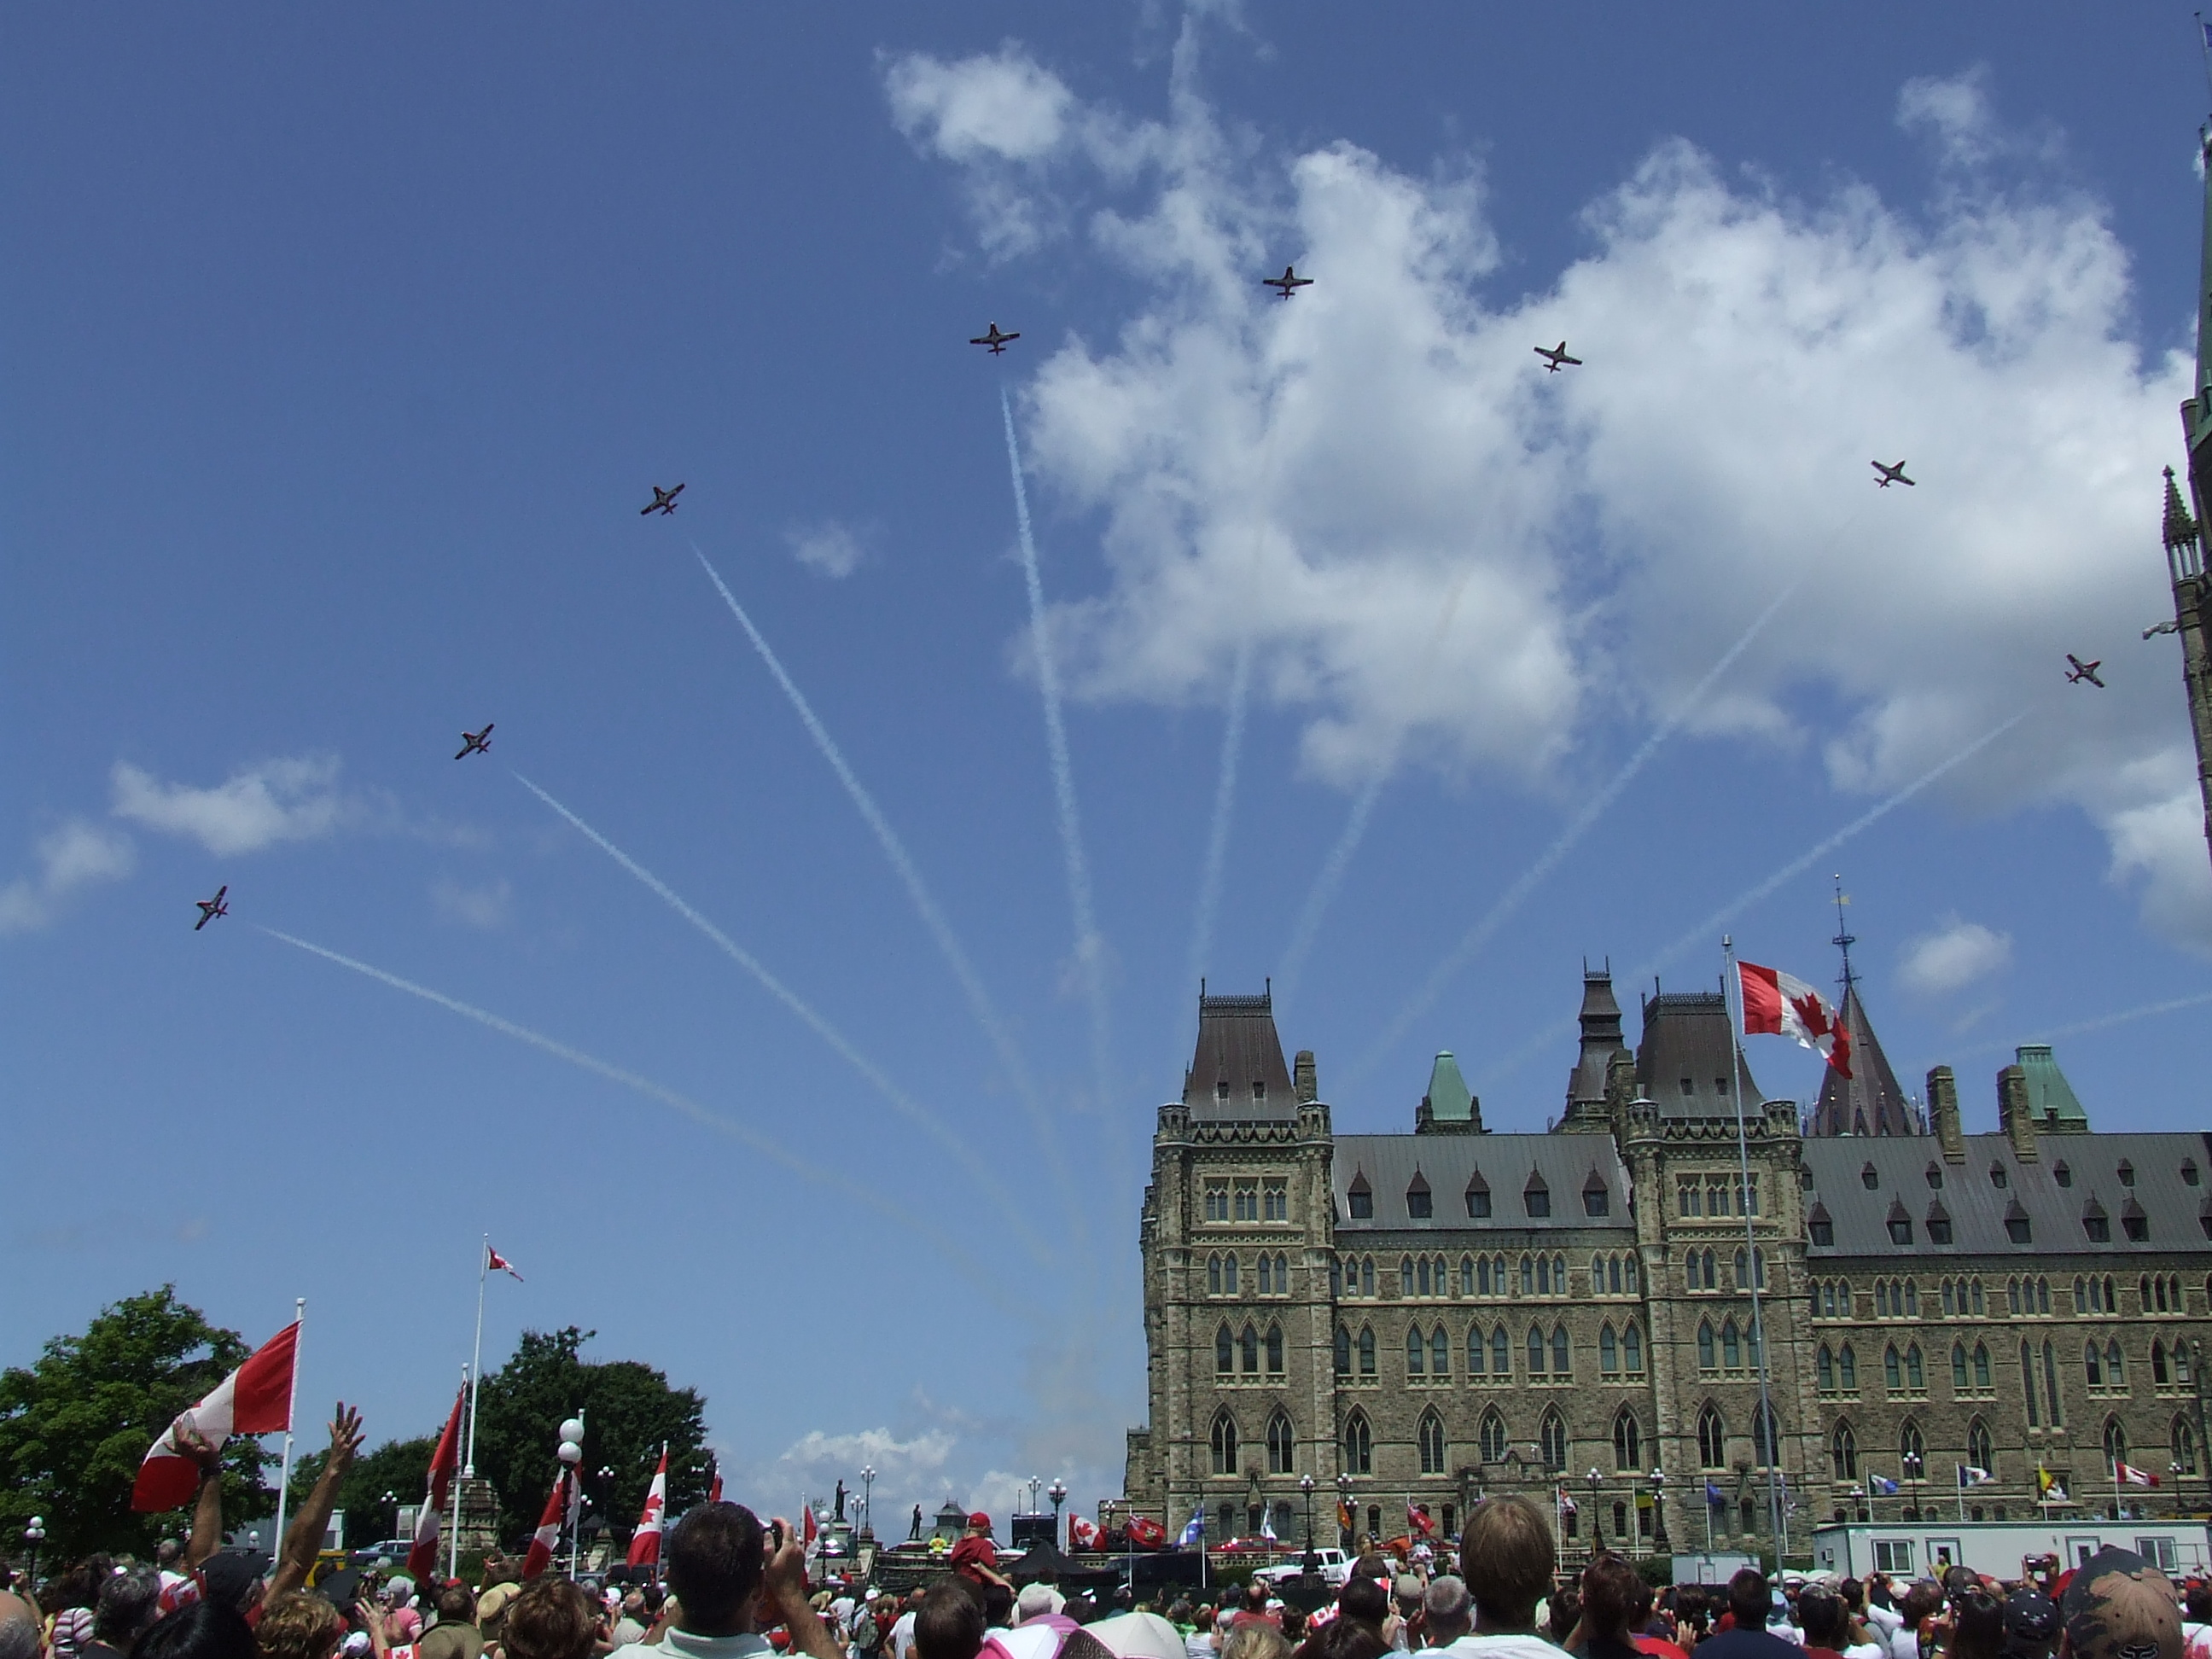 https://i1.wp.com/upload.wikimedia.org/wikipedia/commons/b/bb/Canada_Day_2008_Snowbirds_over_Parliament.jpg